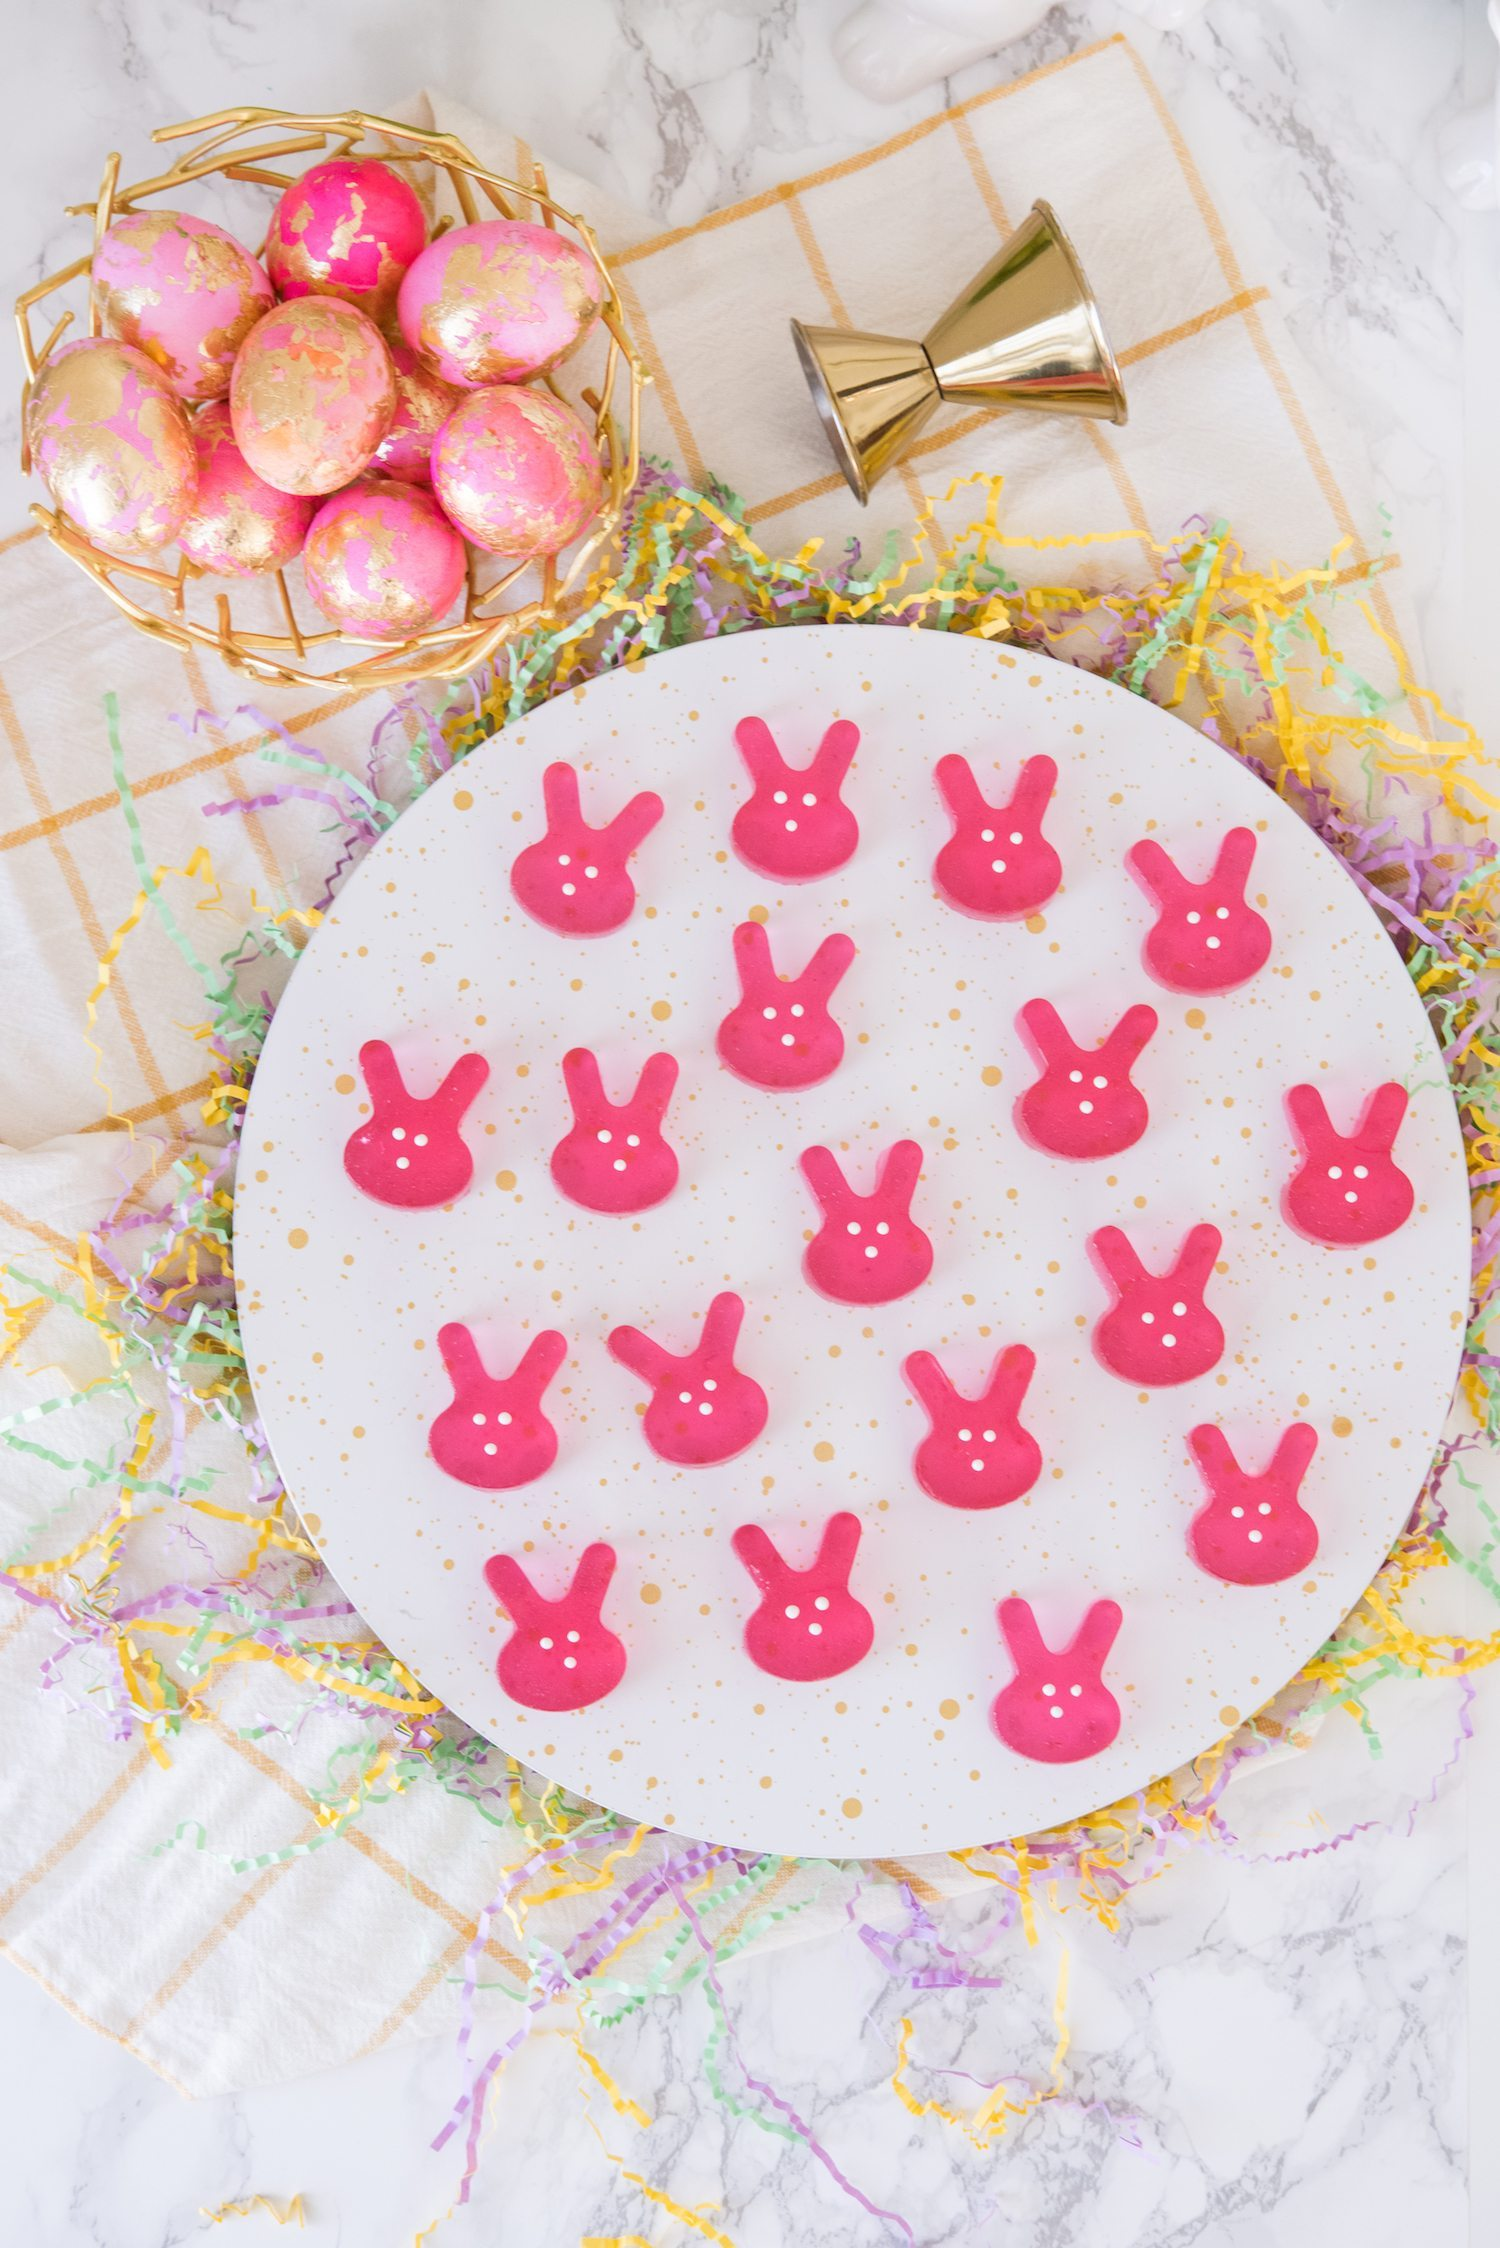 Easter Bunny Jello Shots | Rosé Jello Shots | Click through for super fun cocktail recipe party ideas, holiday cocktails and more from @cydconverse